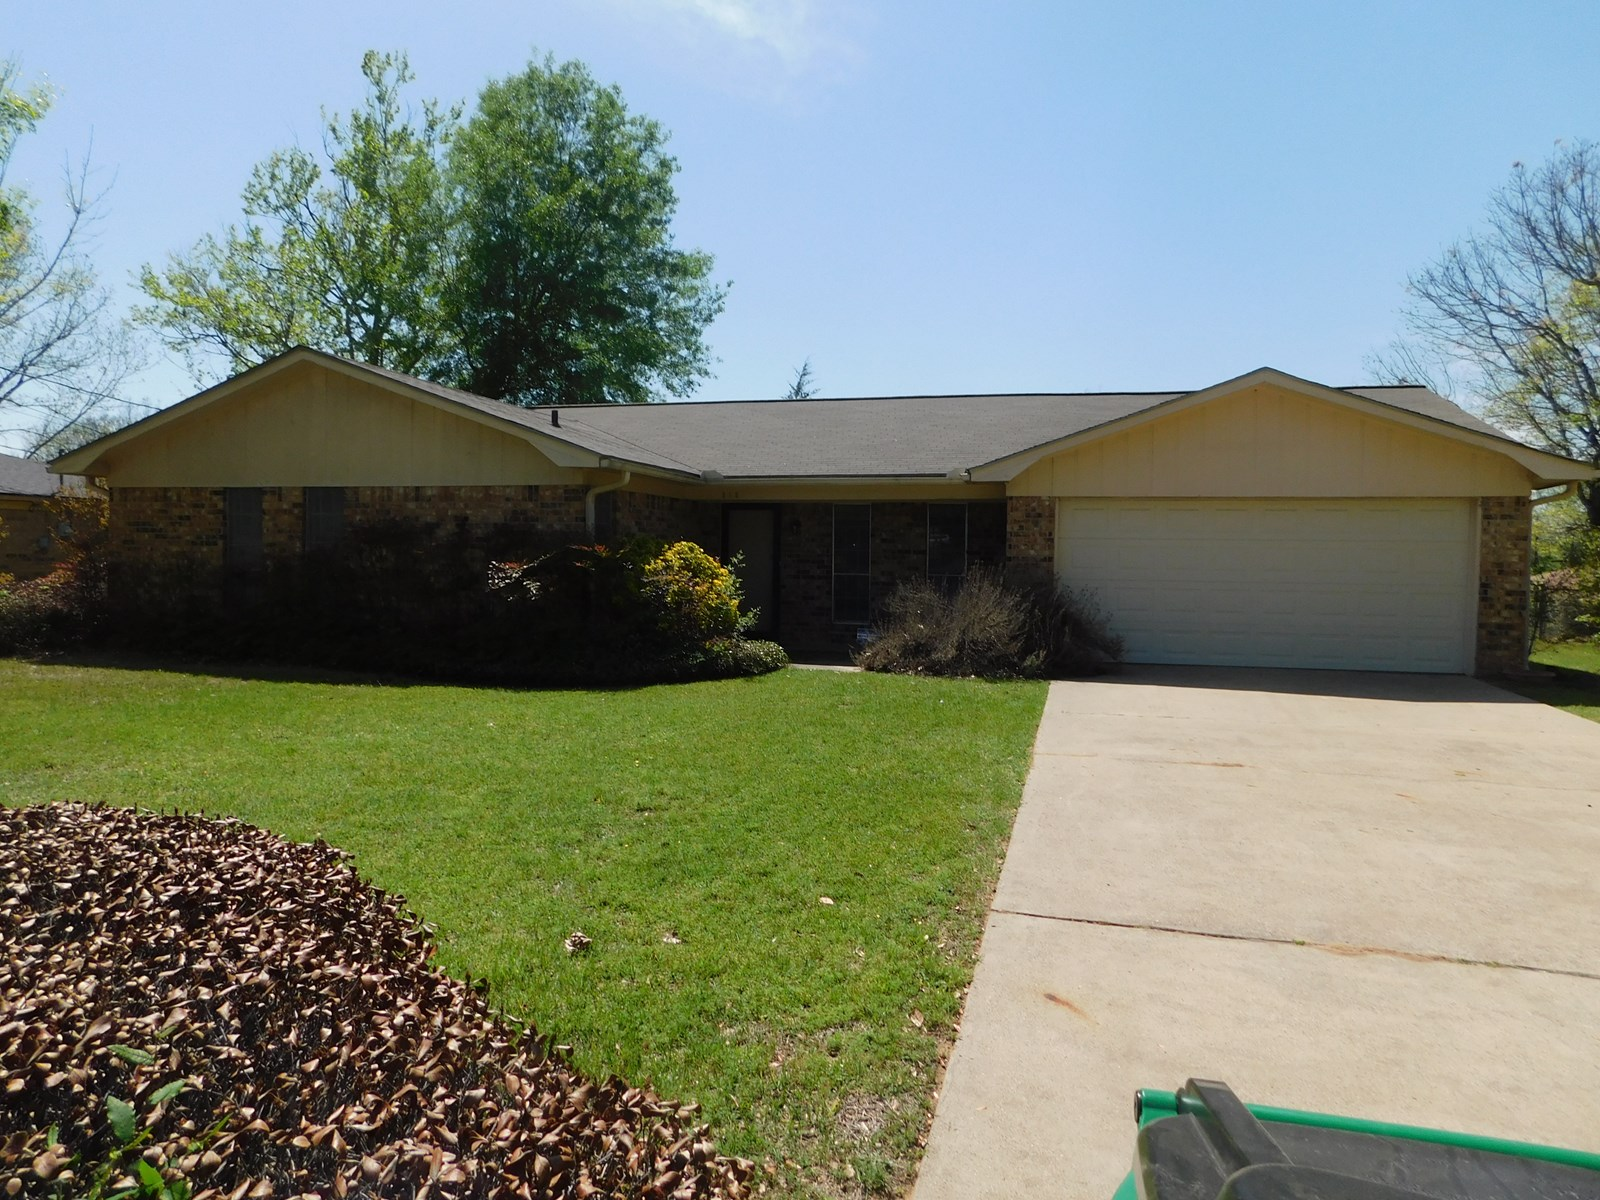 3/2 HOME IN ANDERSON COUNTY FOR SALE